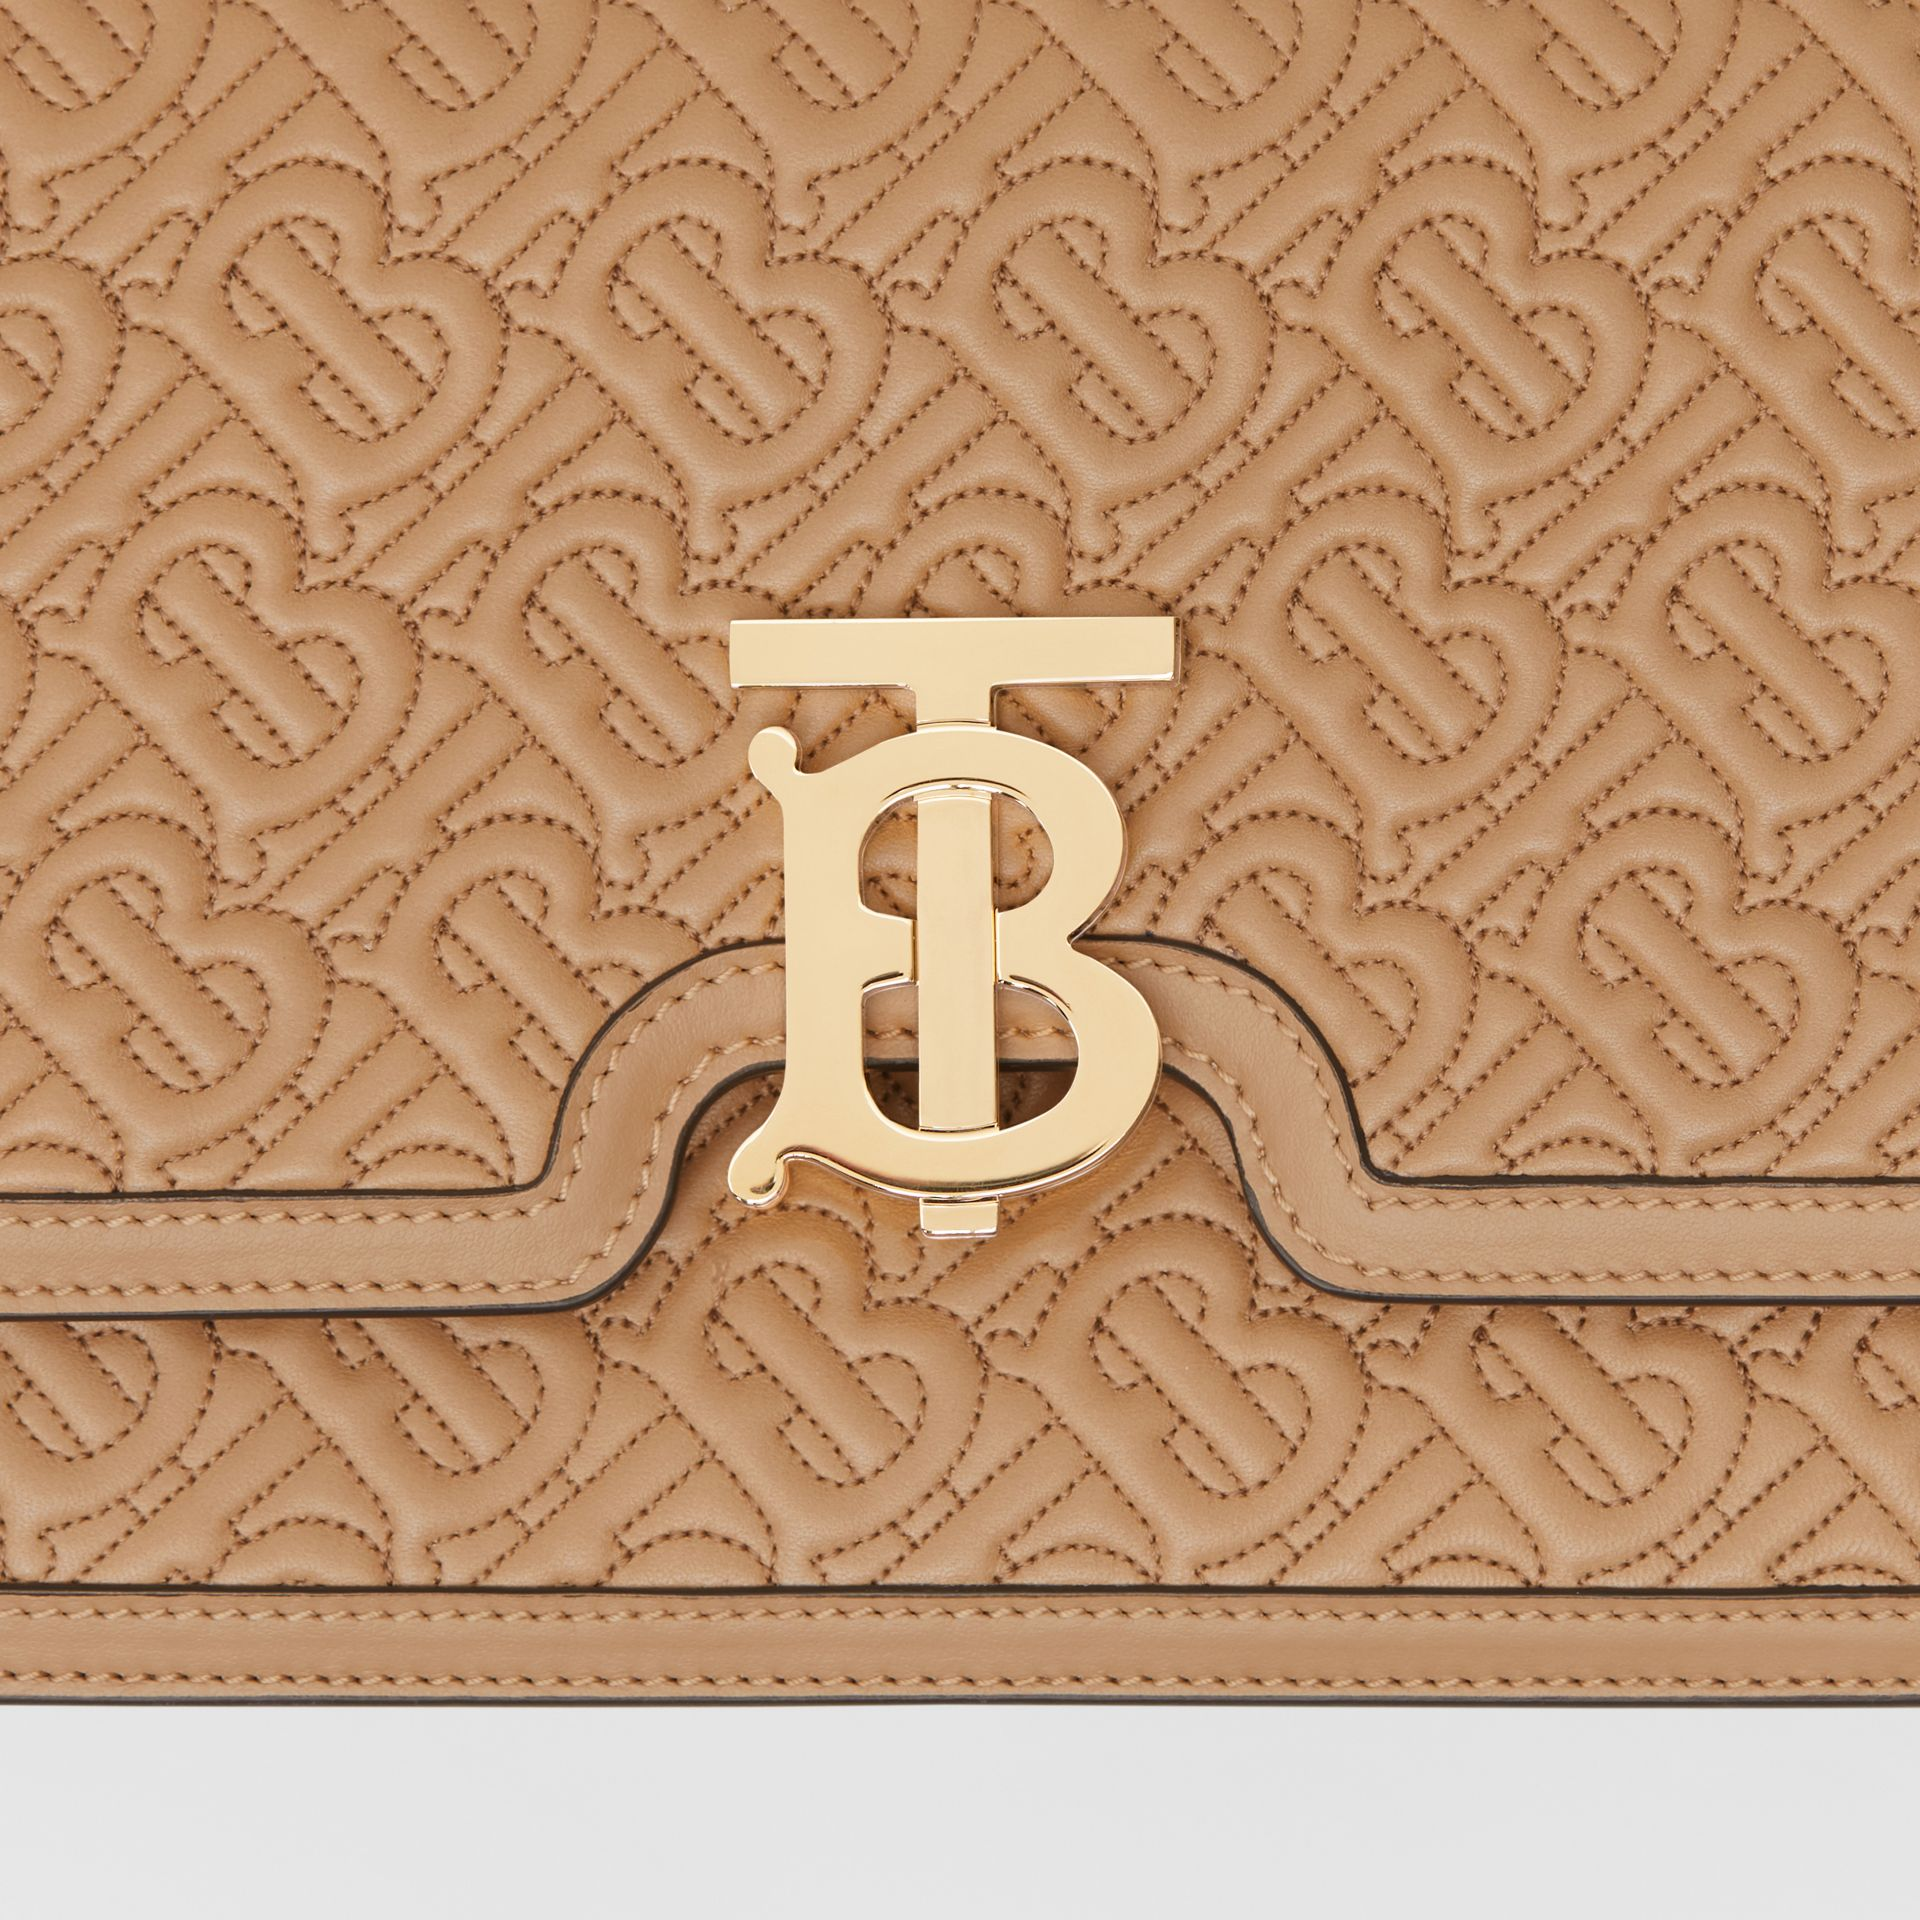 Medium Quilted Monogram Lambskin TB Bag in Honey - Women | Burberry Hong Kong - gallery image 1